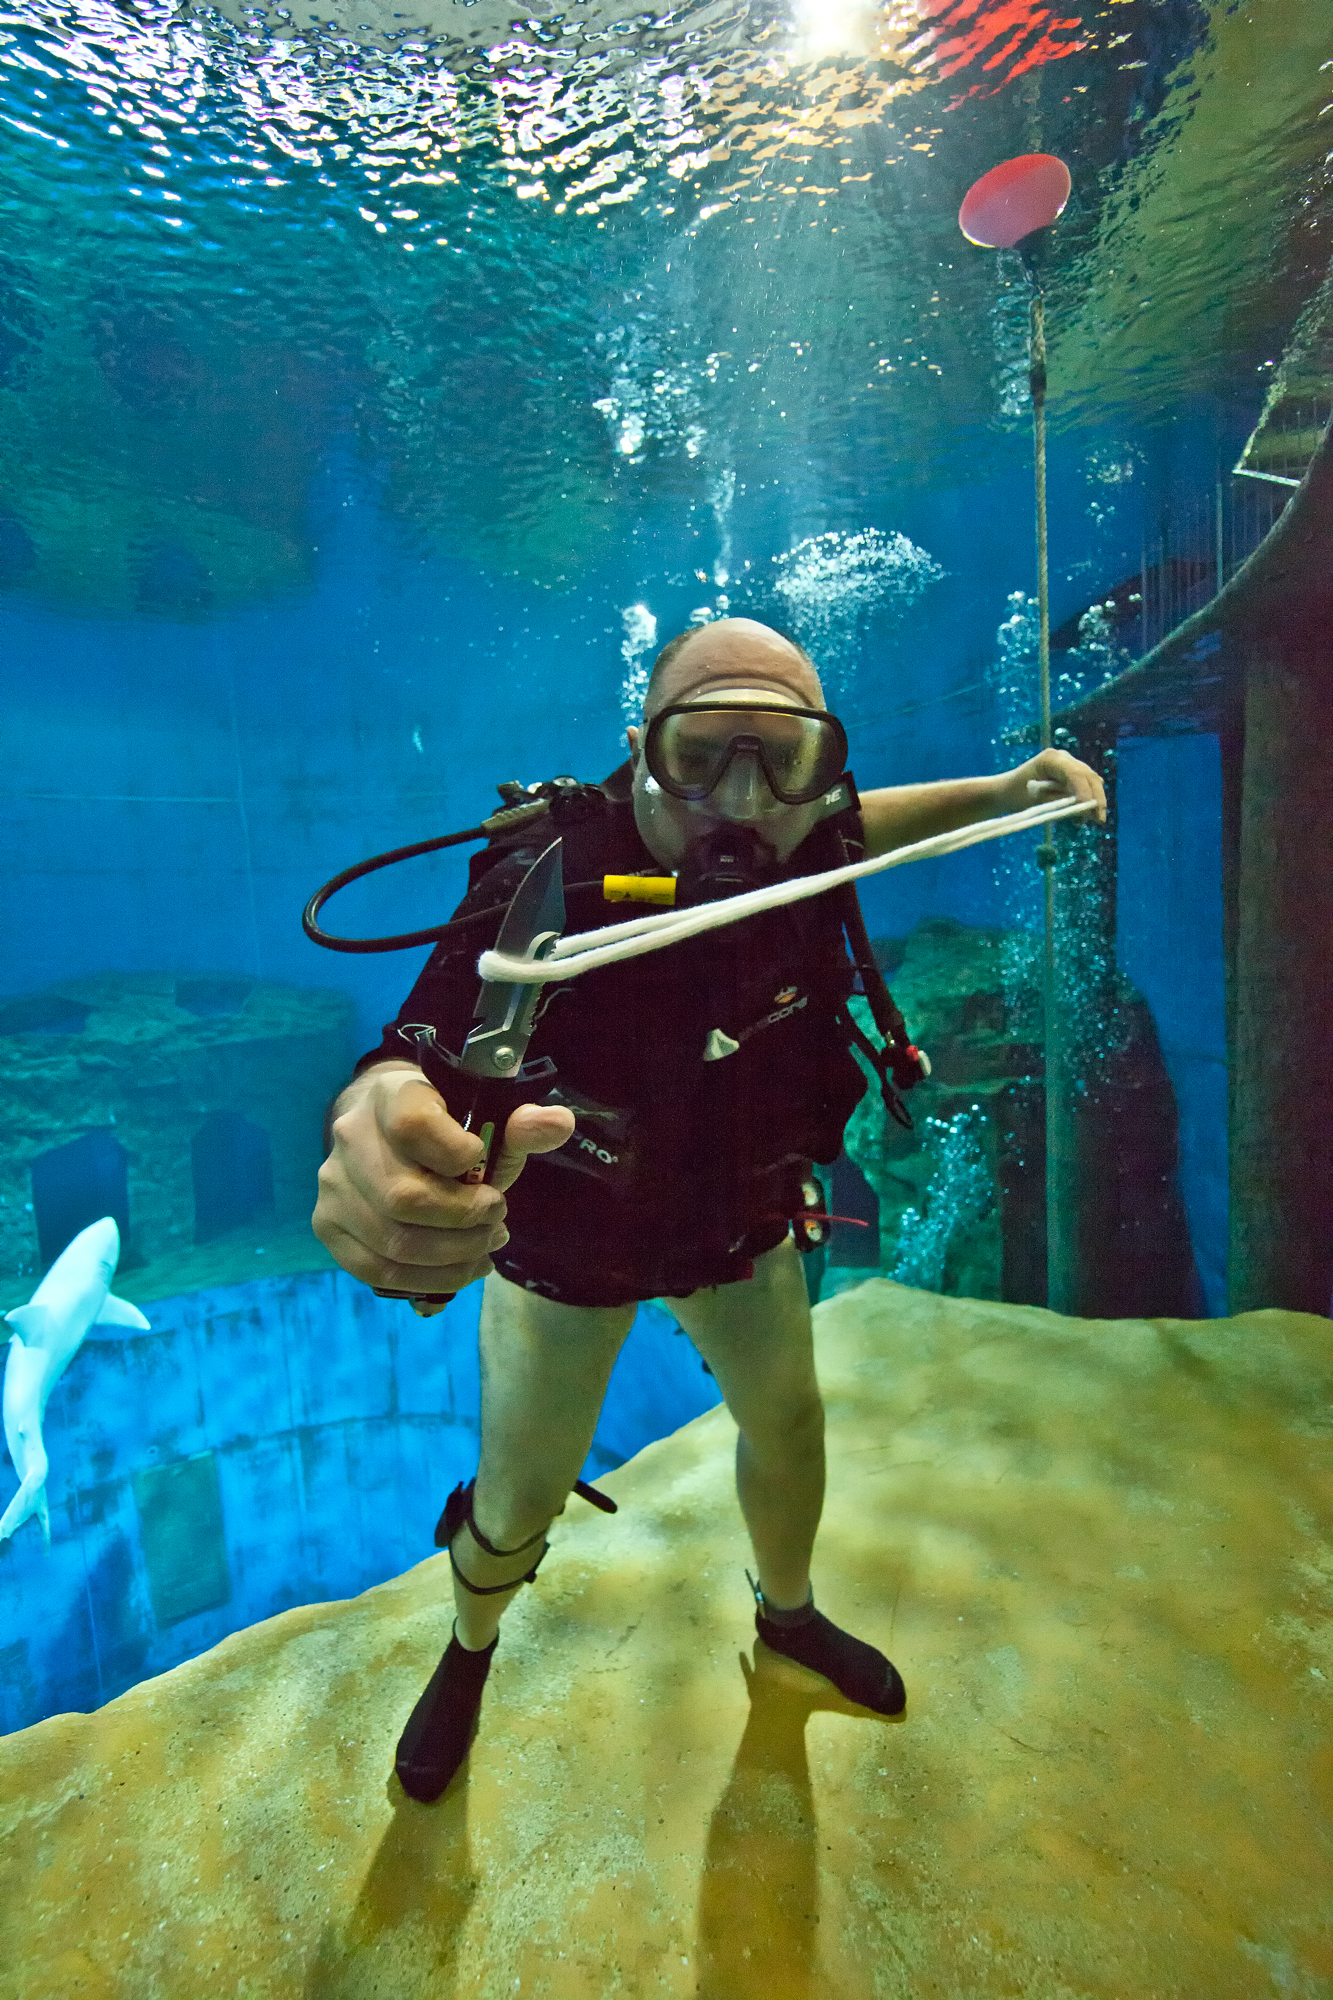 The World S First Underwater Magic Show Gives Audiences A Unique And Wet Experience